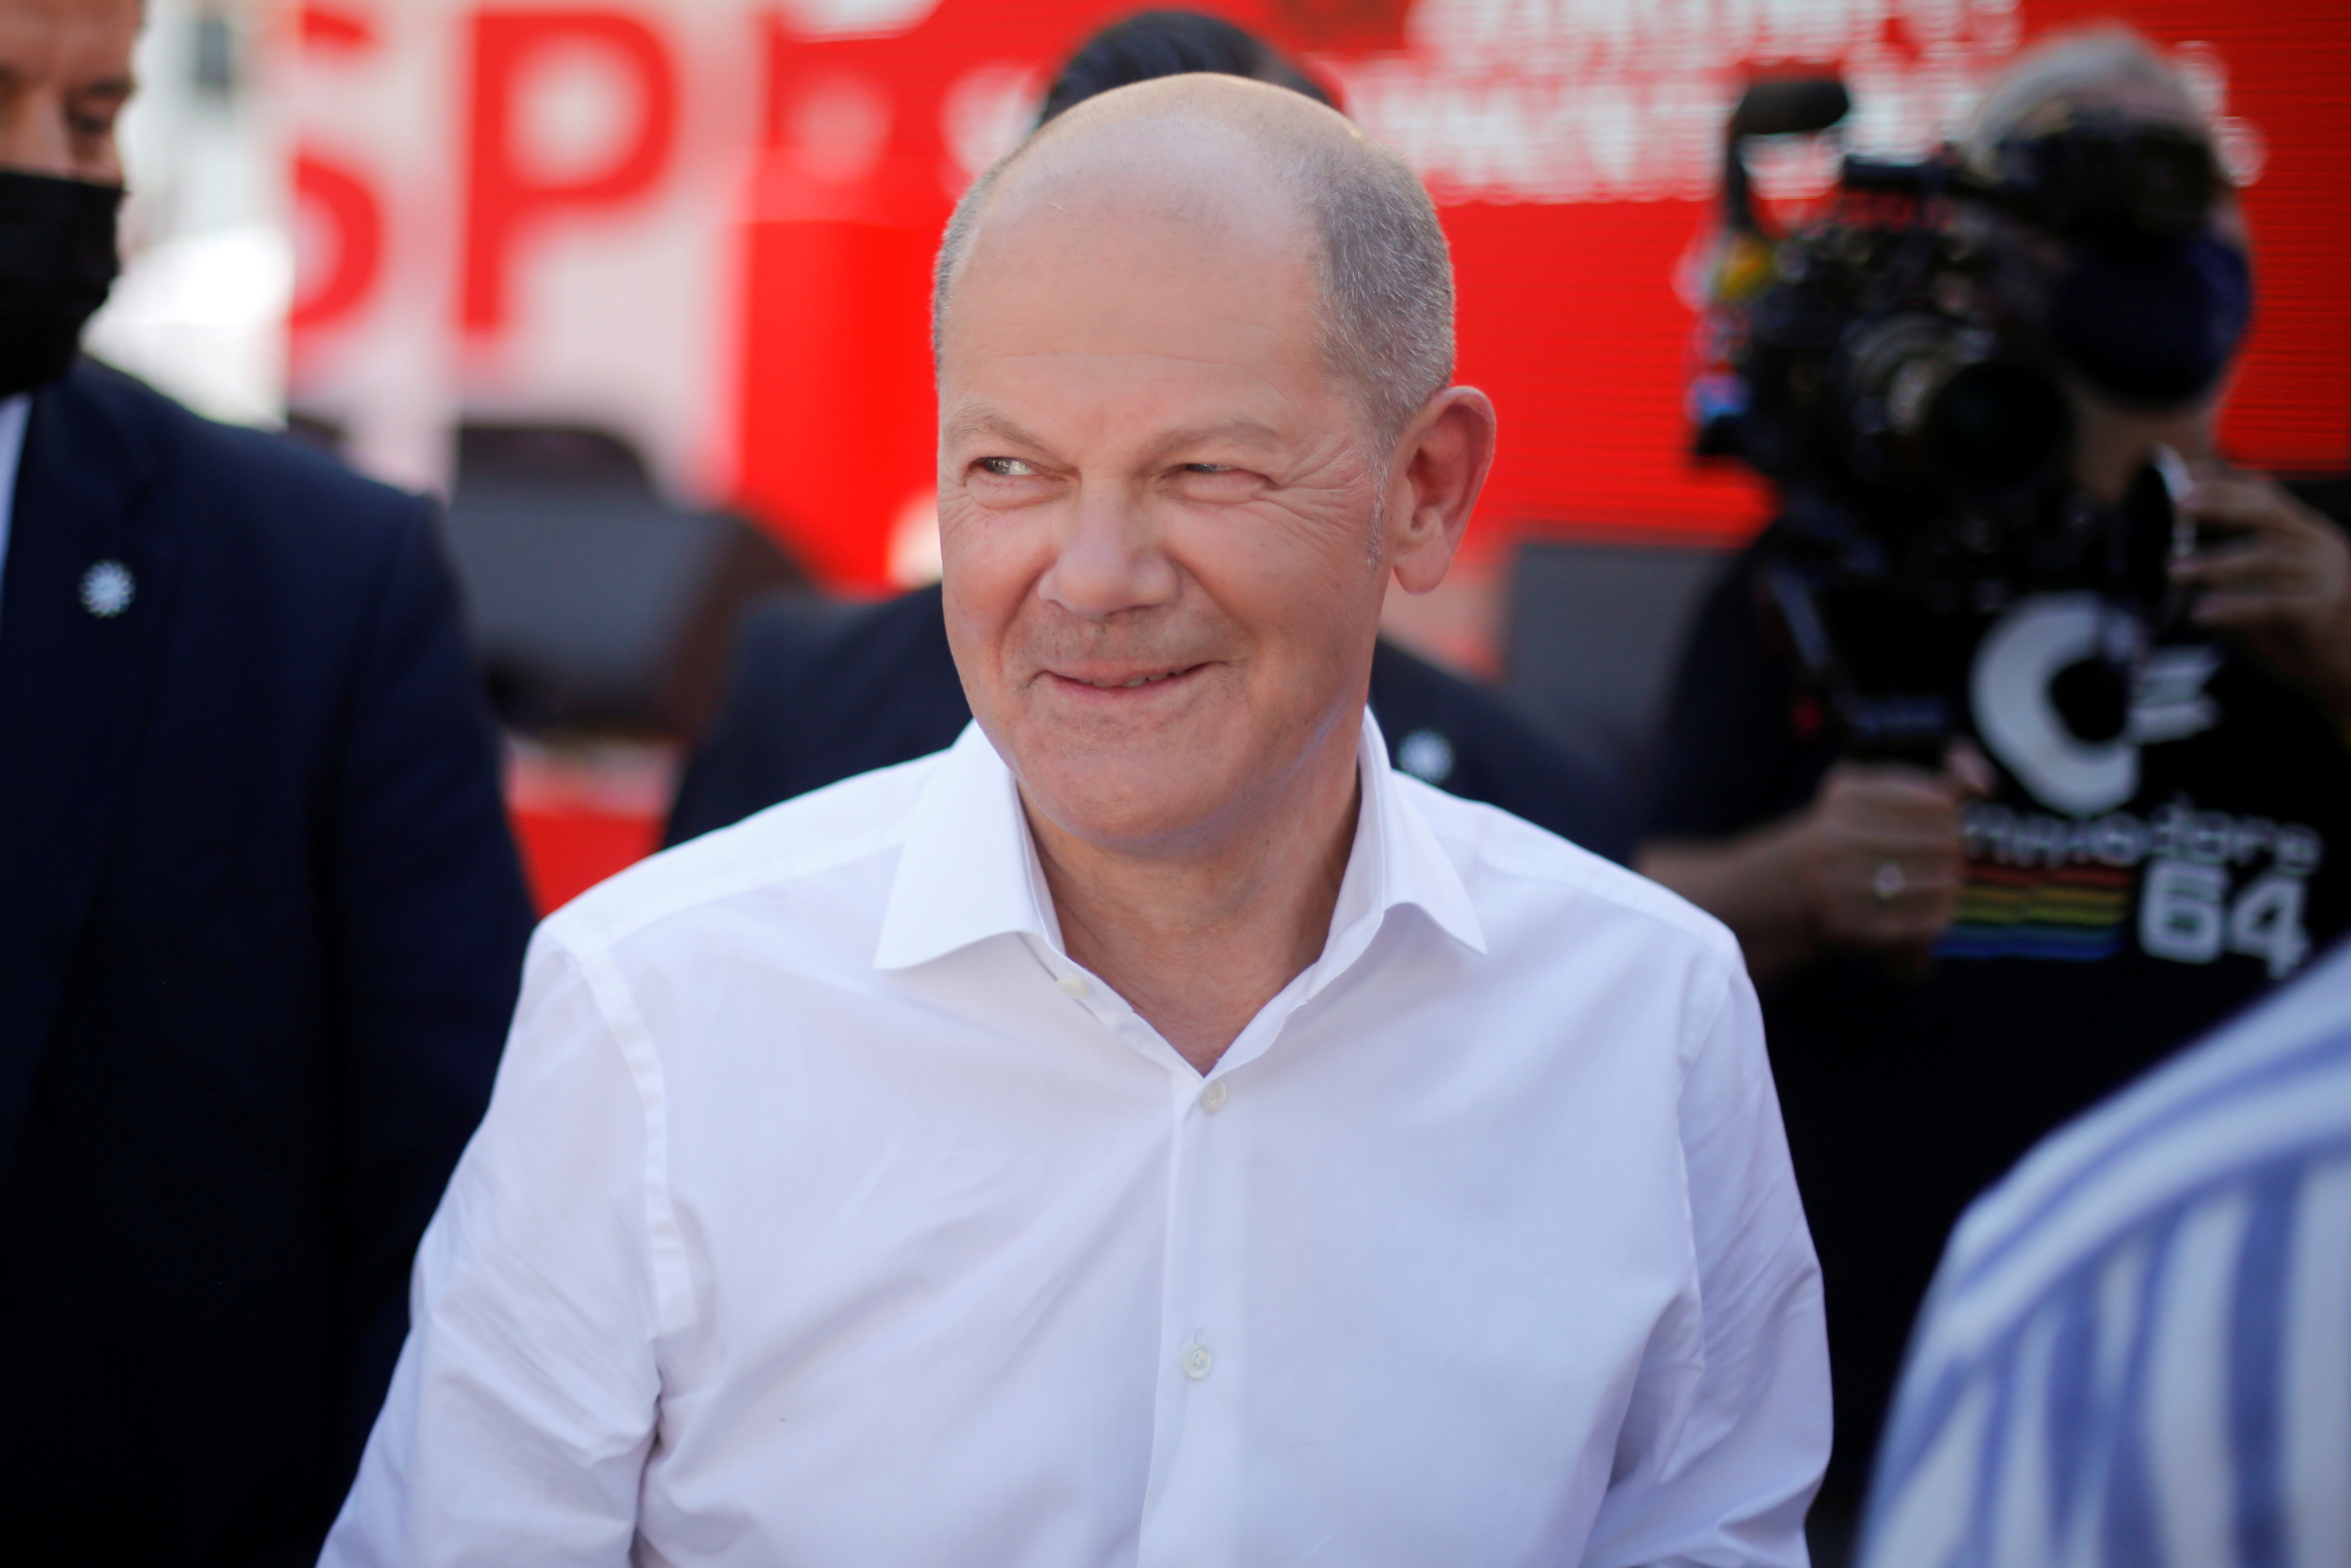 SPD Chancellor candidate Olaf Scholz looks on after an event to kick off his campaign, in Bochum, Germany, August 14, 2021. REUTERS/Leon Kuegeler/Pool